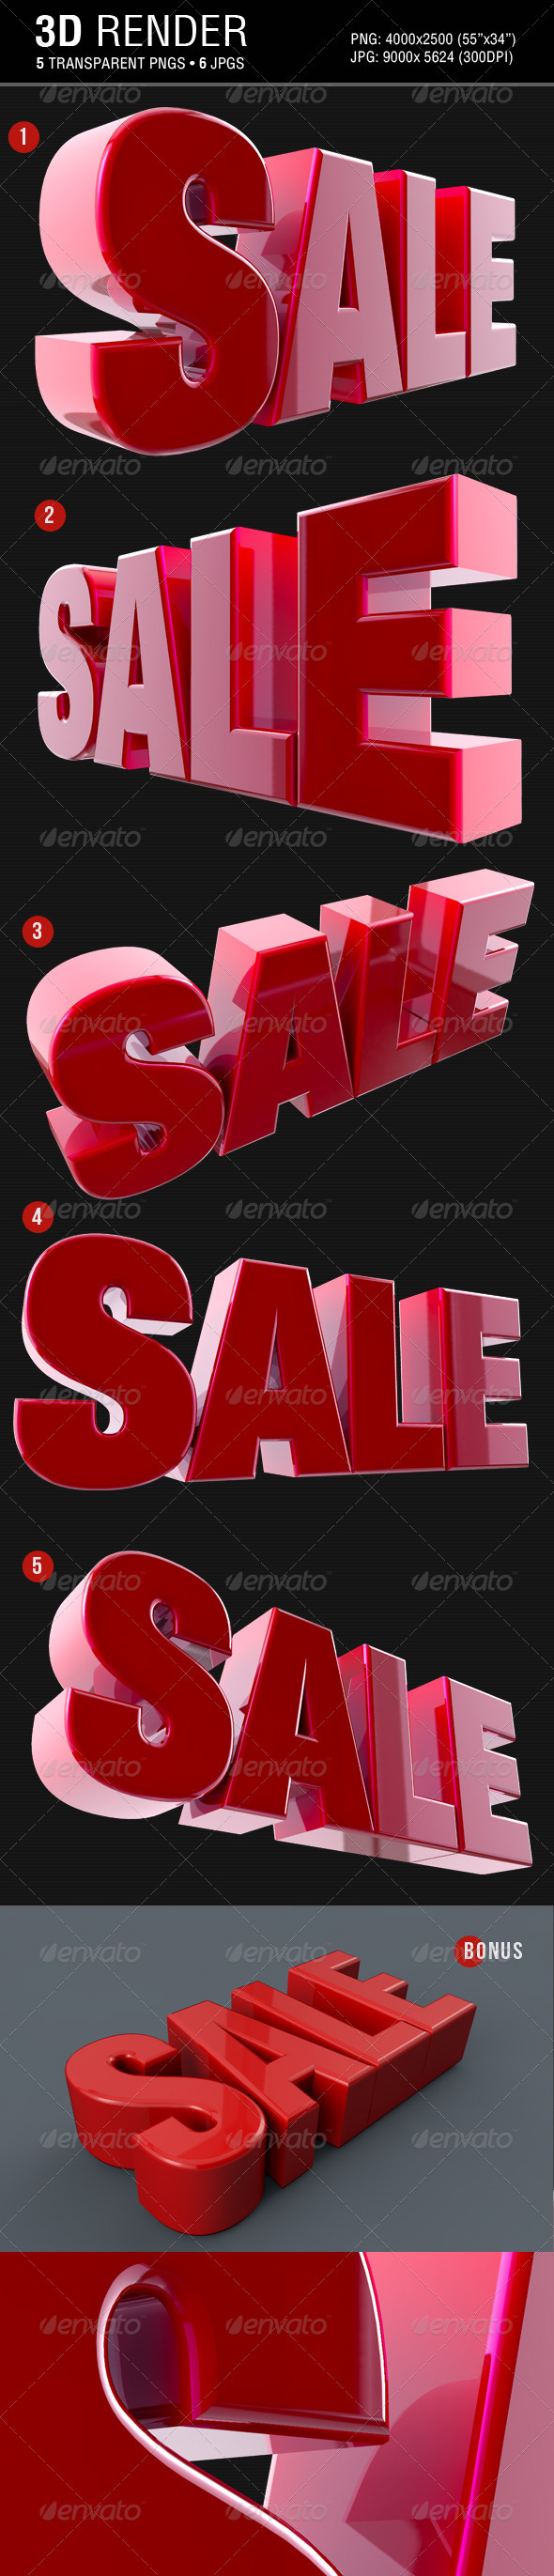 GraphicRiver Sale 3D Text Render 3529629